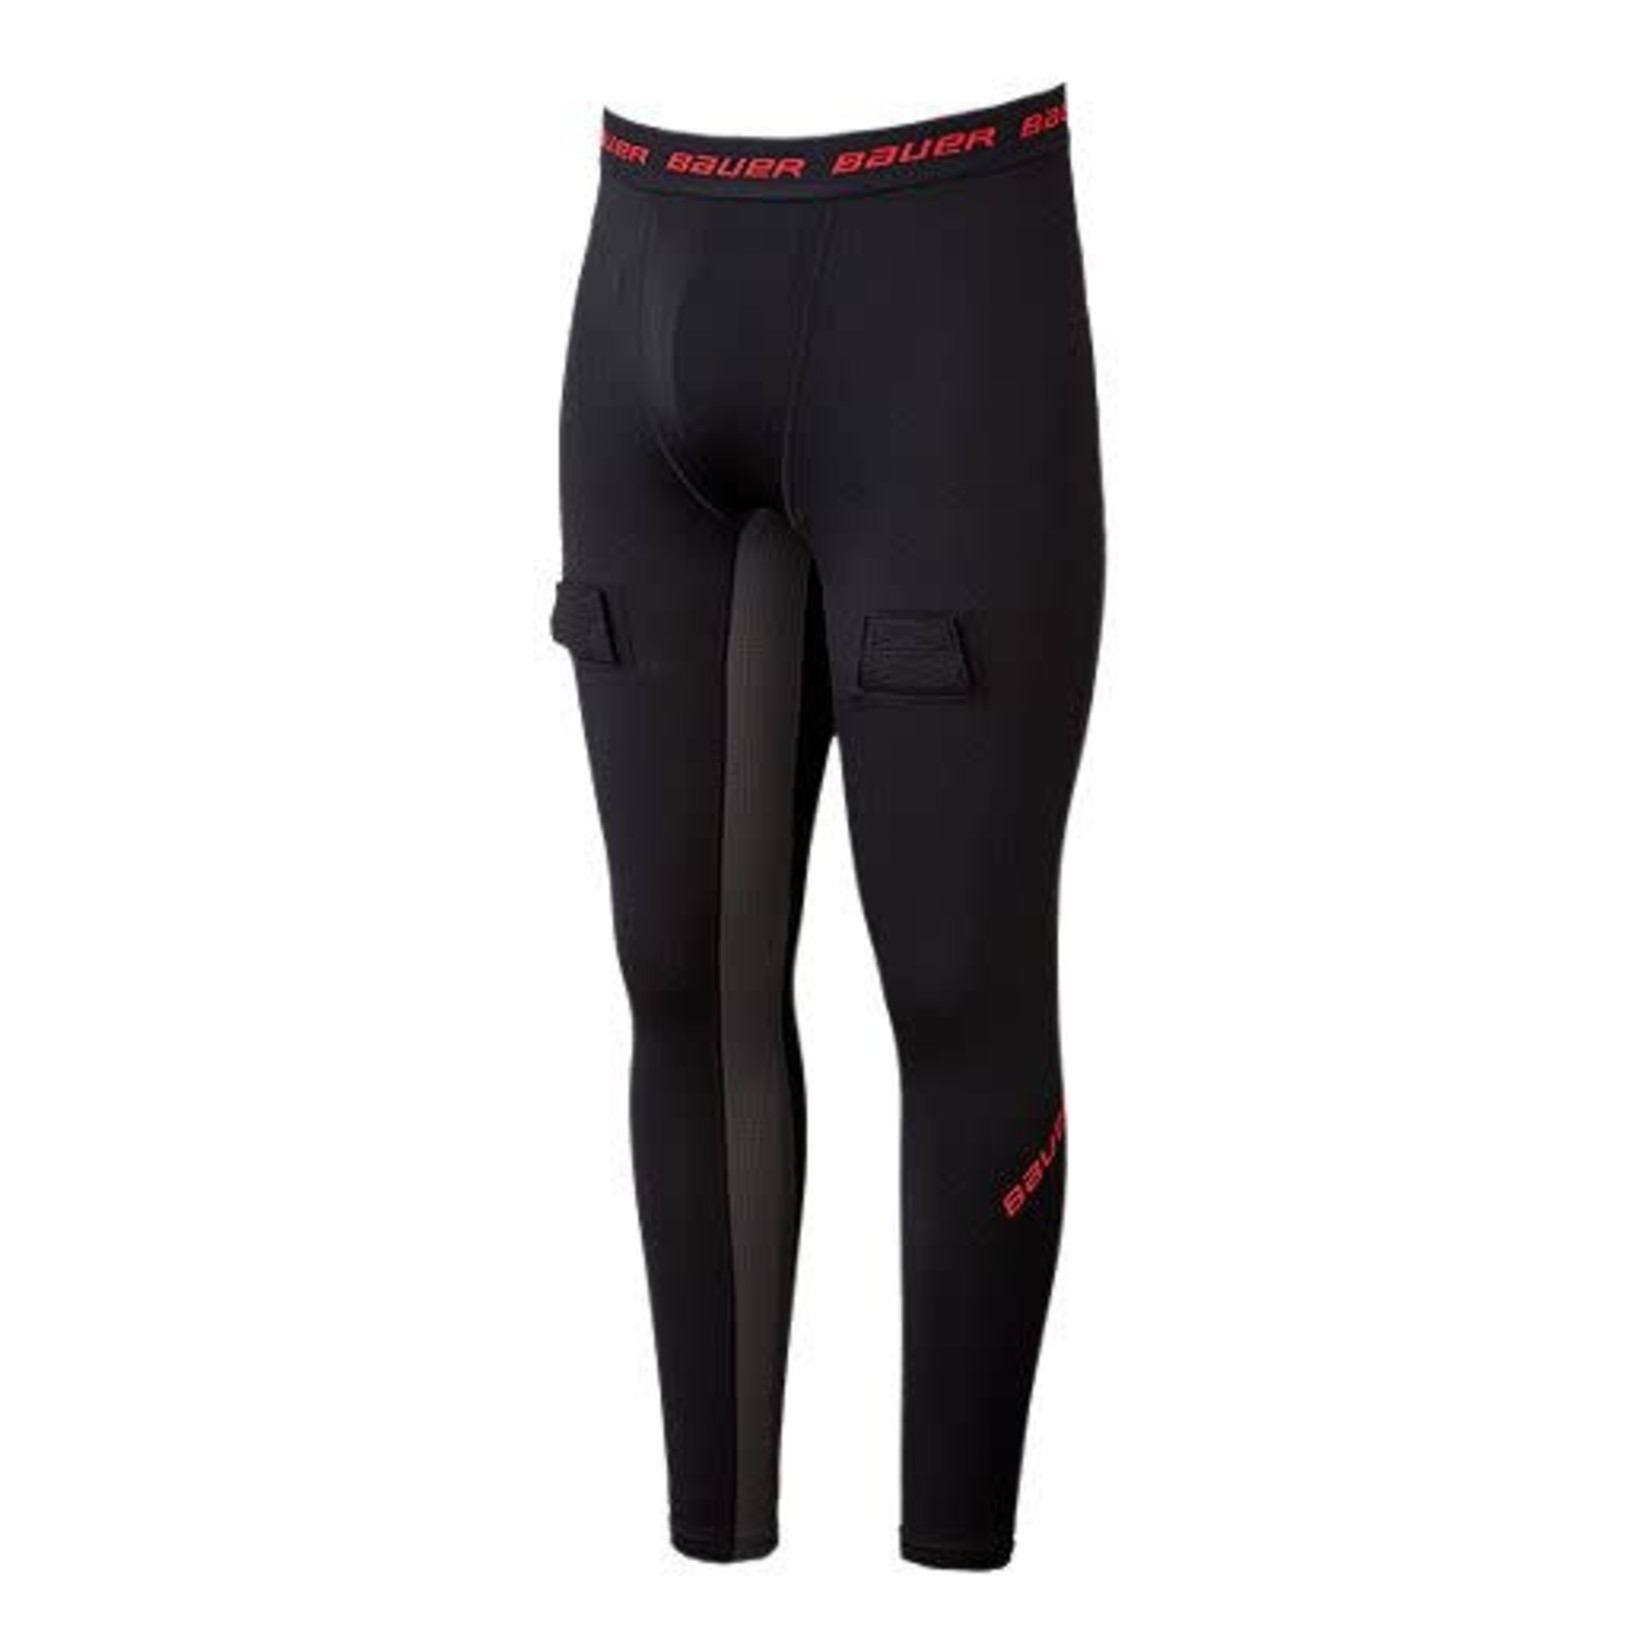 Bauer Bauer Compression Jock Pants, Essential, Youth